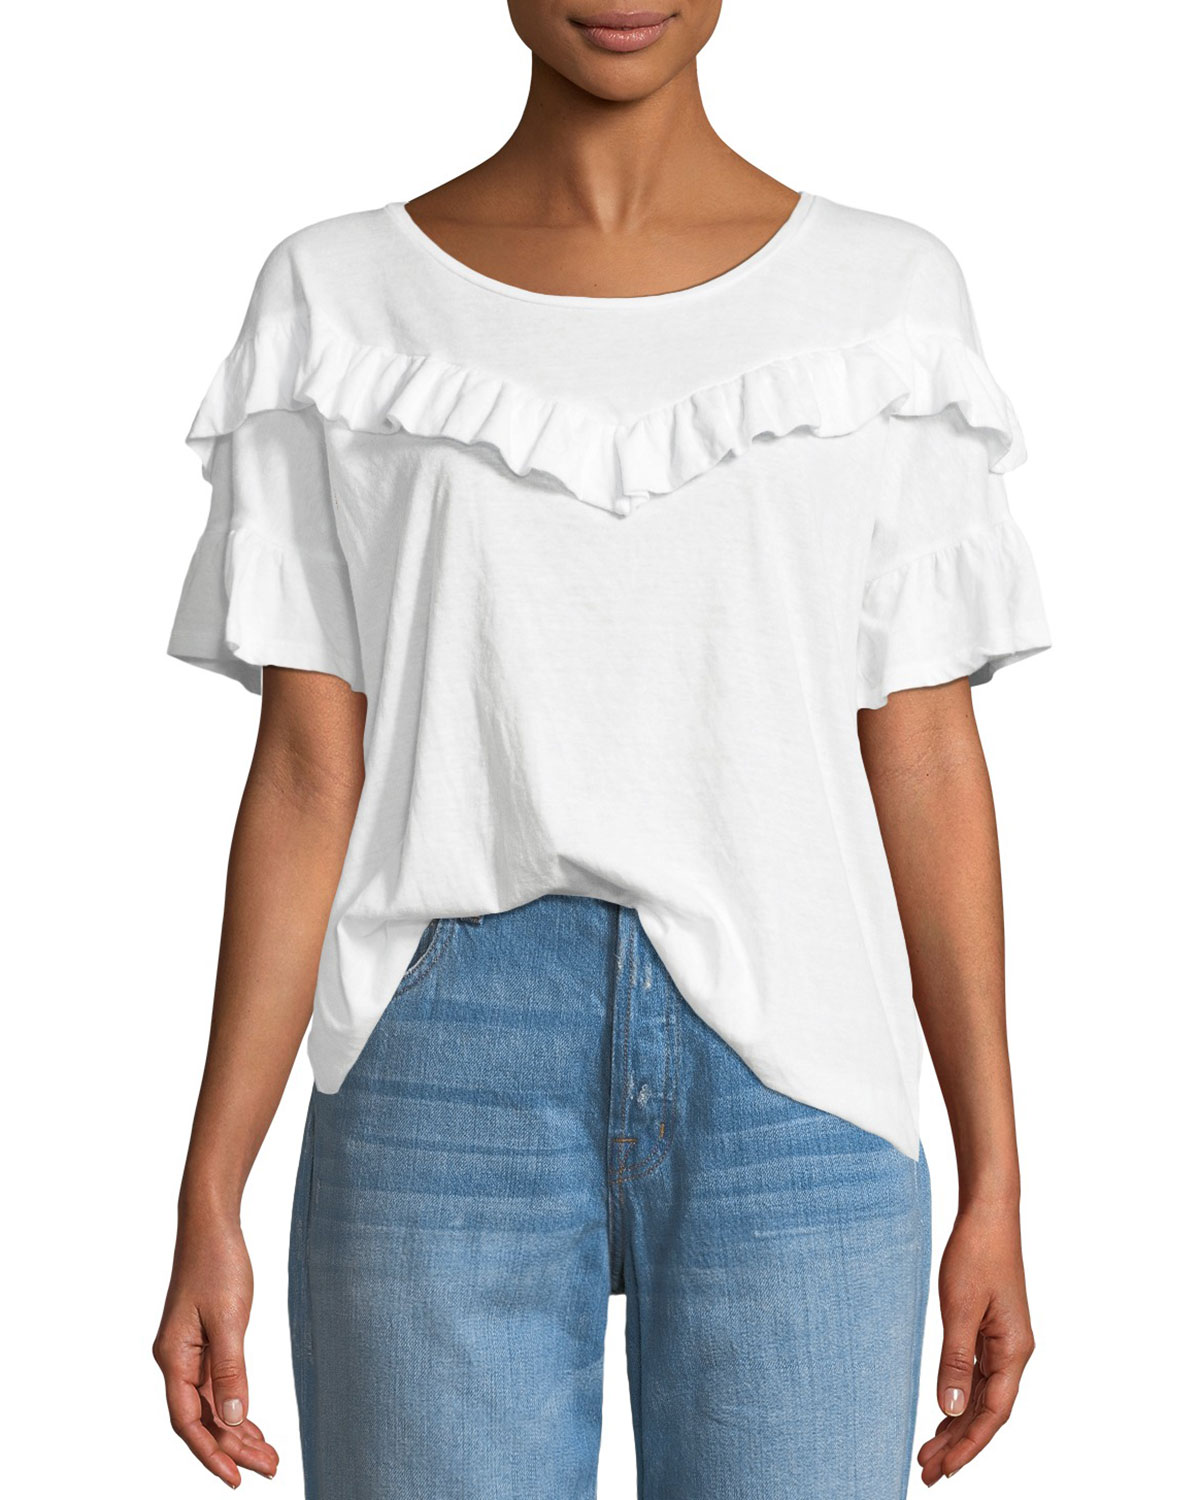 b5239f4737 PAIGE Adalie Ruffle Short-Sleeve Top